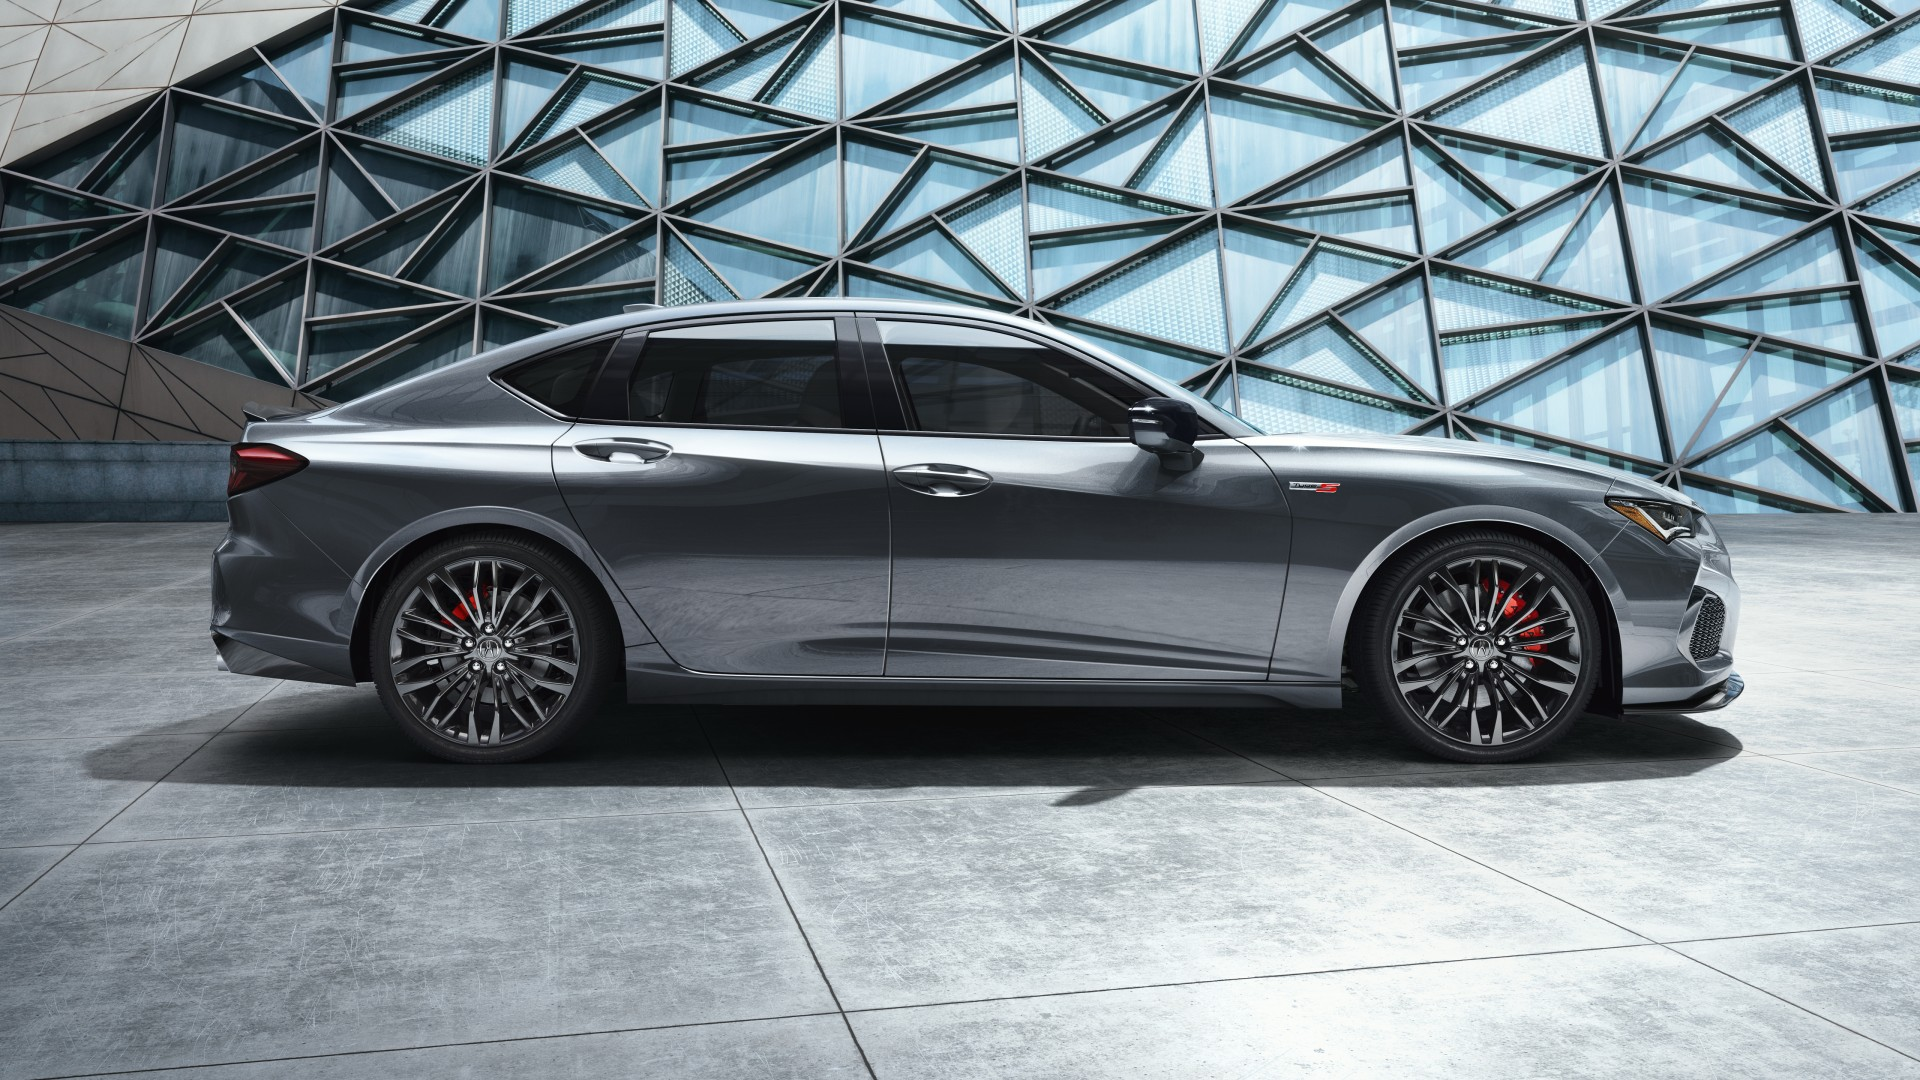 2021 Acura TLX Type S 5K Wallpaper HD Car Wallpapers ID 14896 1920x1080